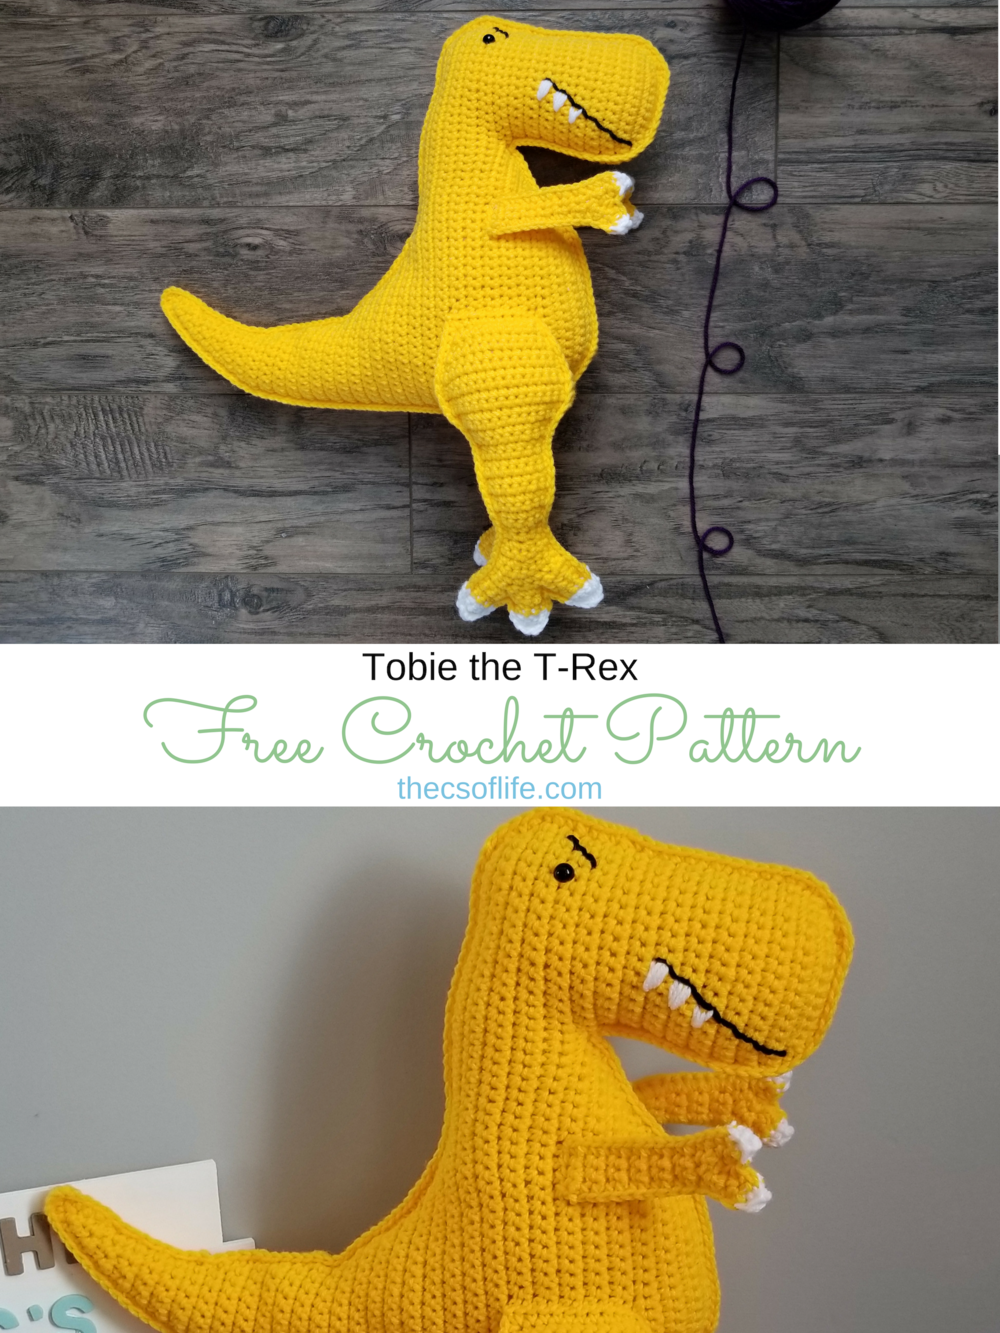 Tobie the T-Rex - Free Crochet Pattern